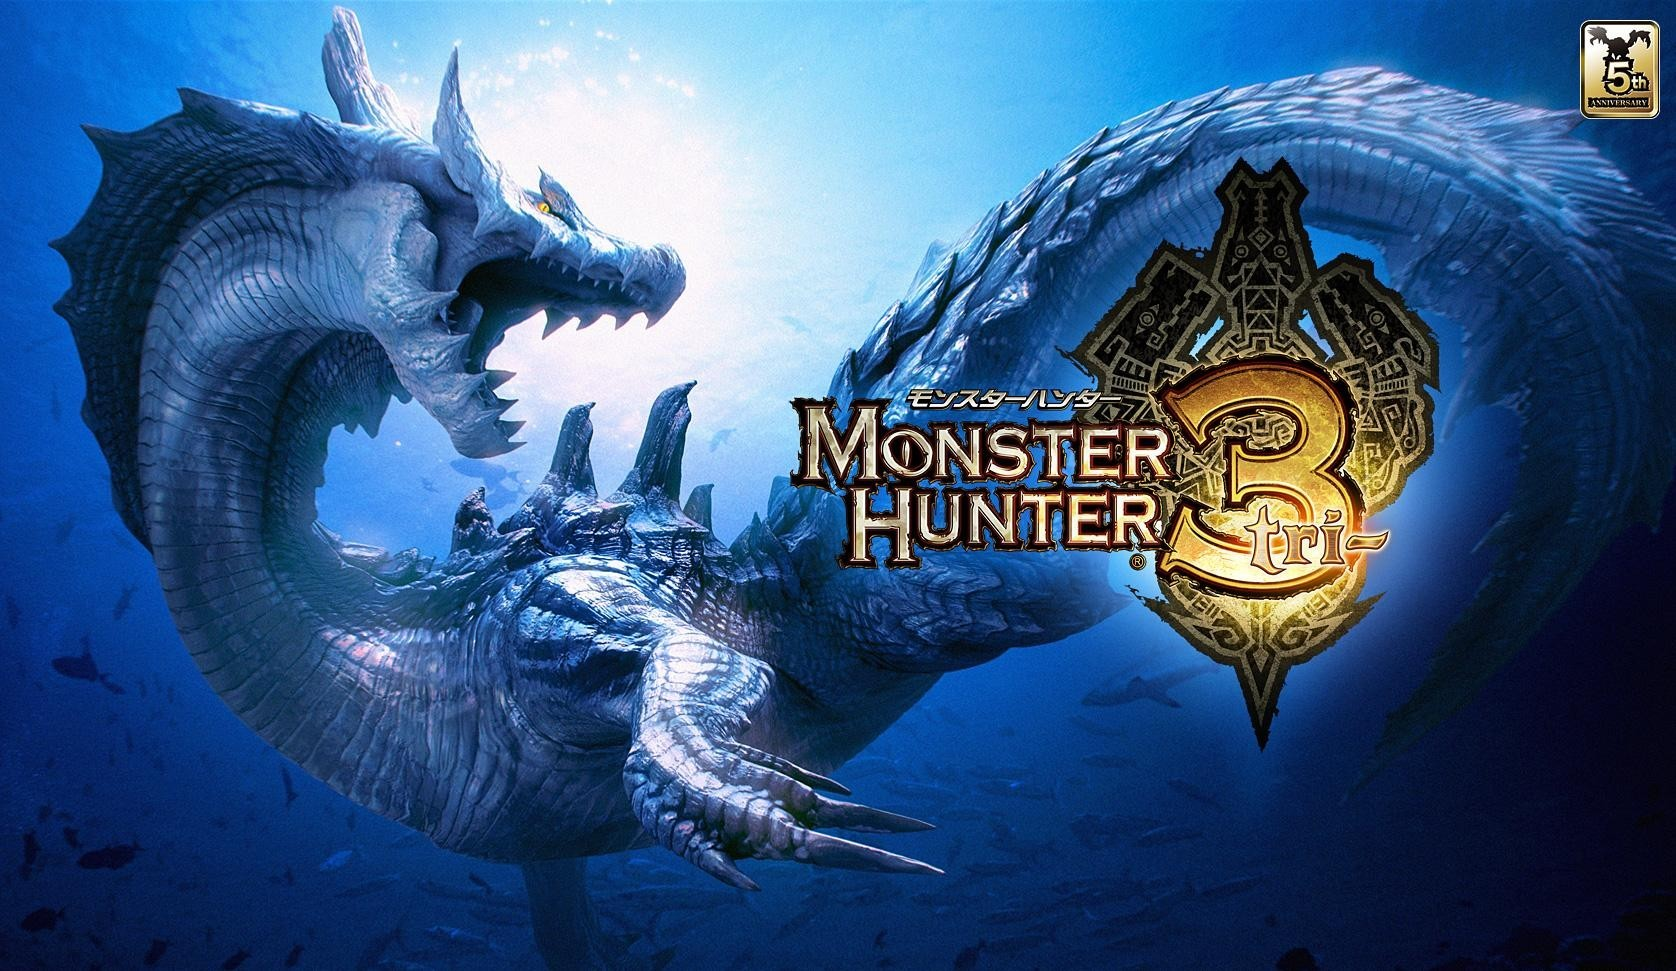 Dragons Monster Hunter HD Wallpaper